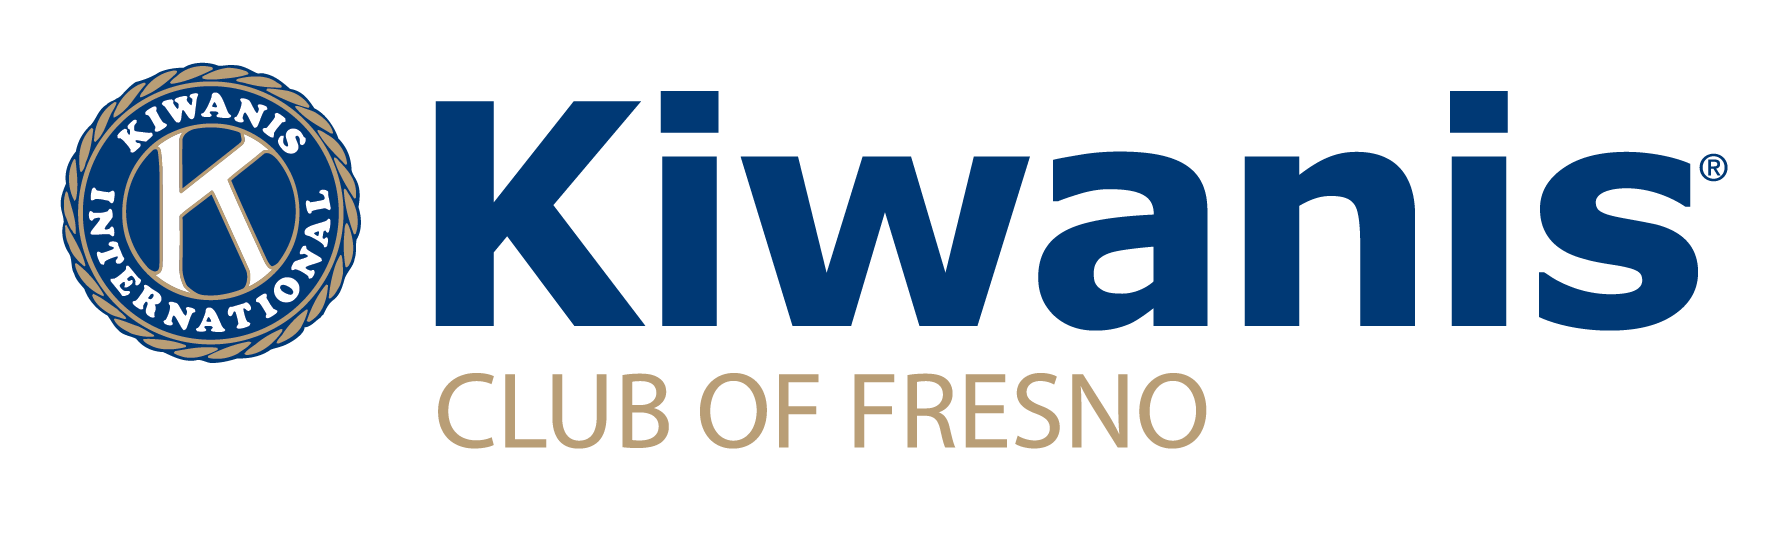 KI_Club_of_Fresno_BLUEGOLD-01.png